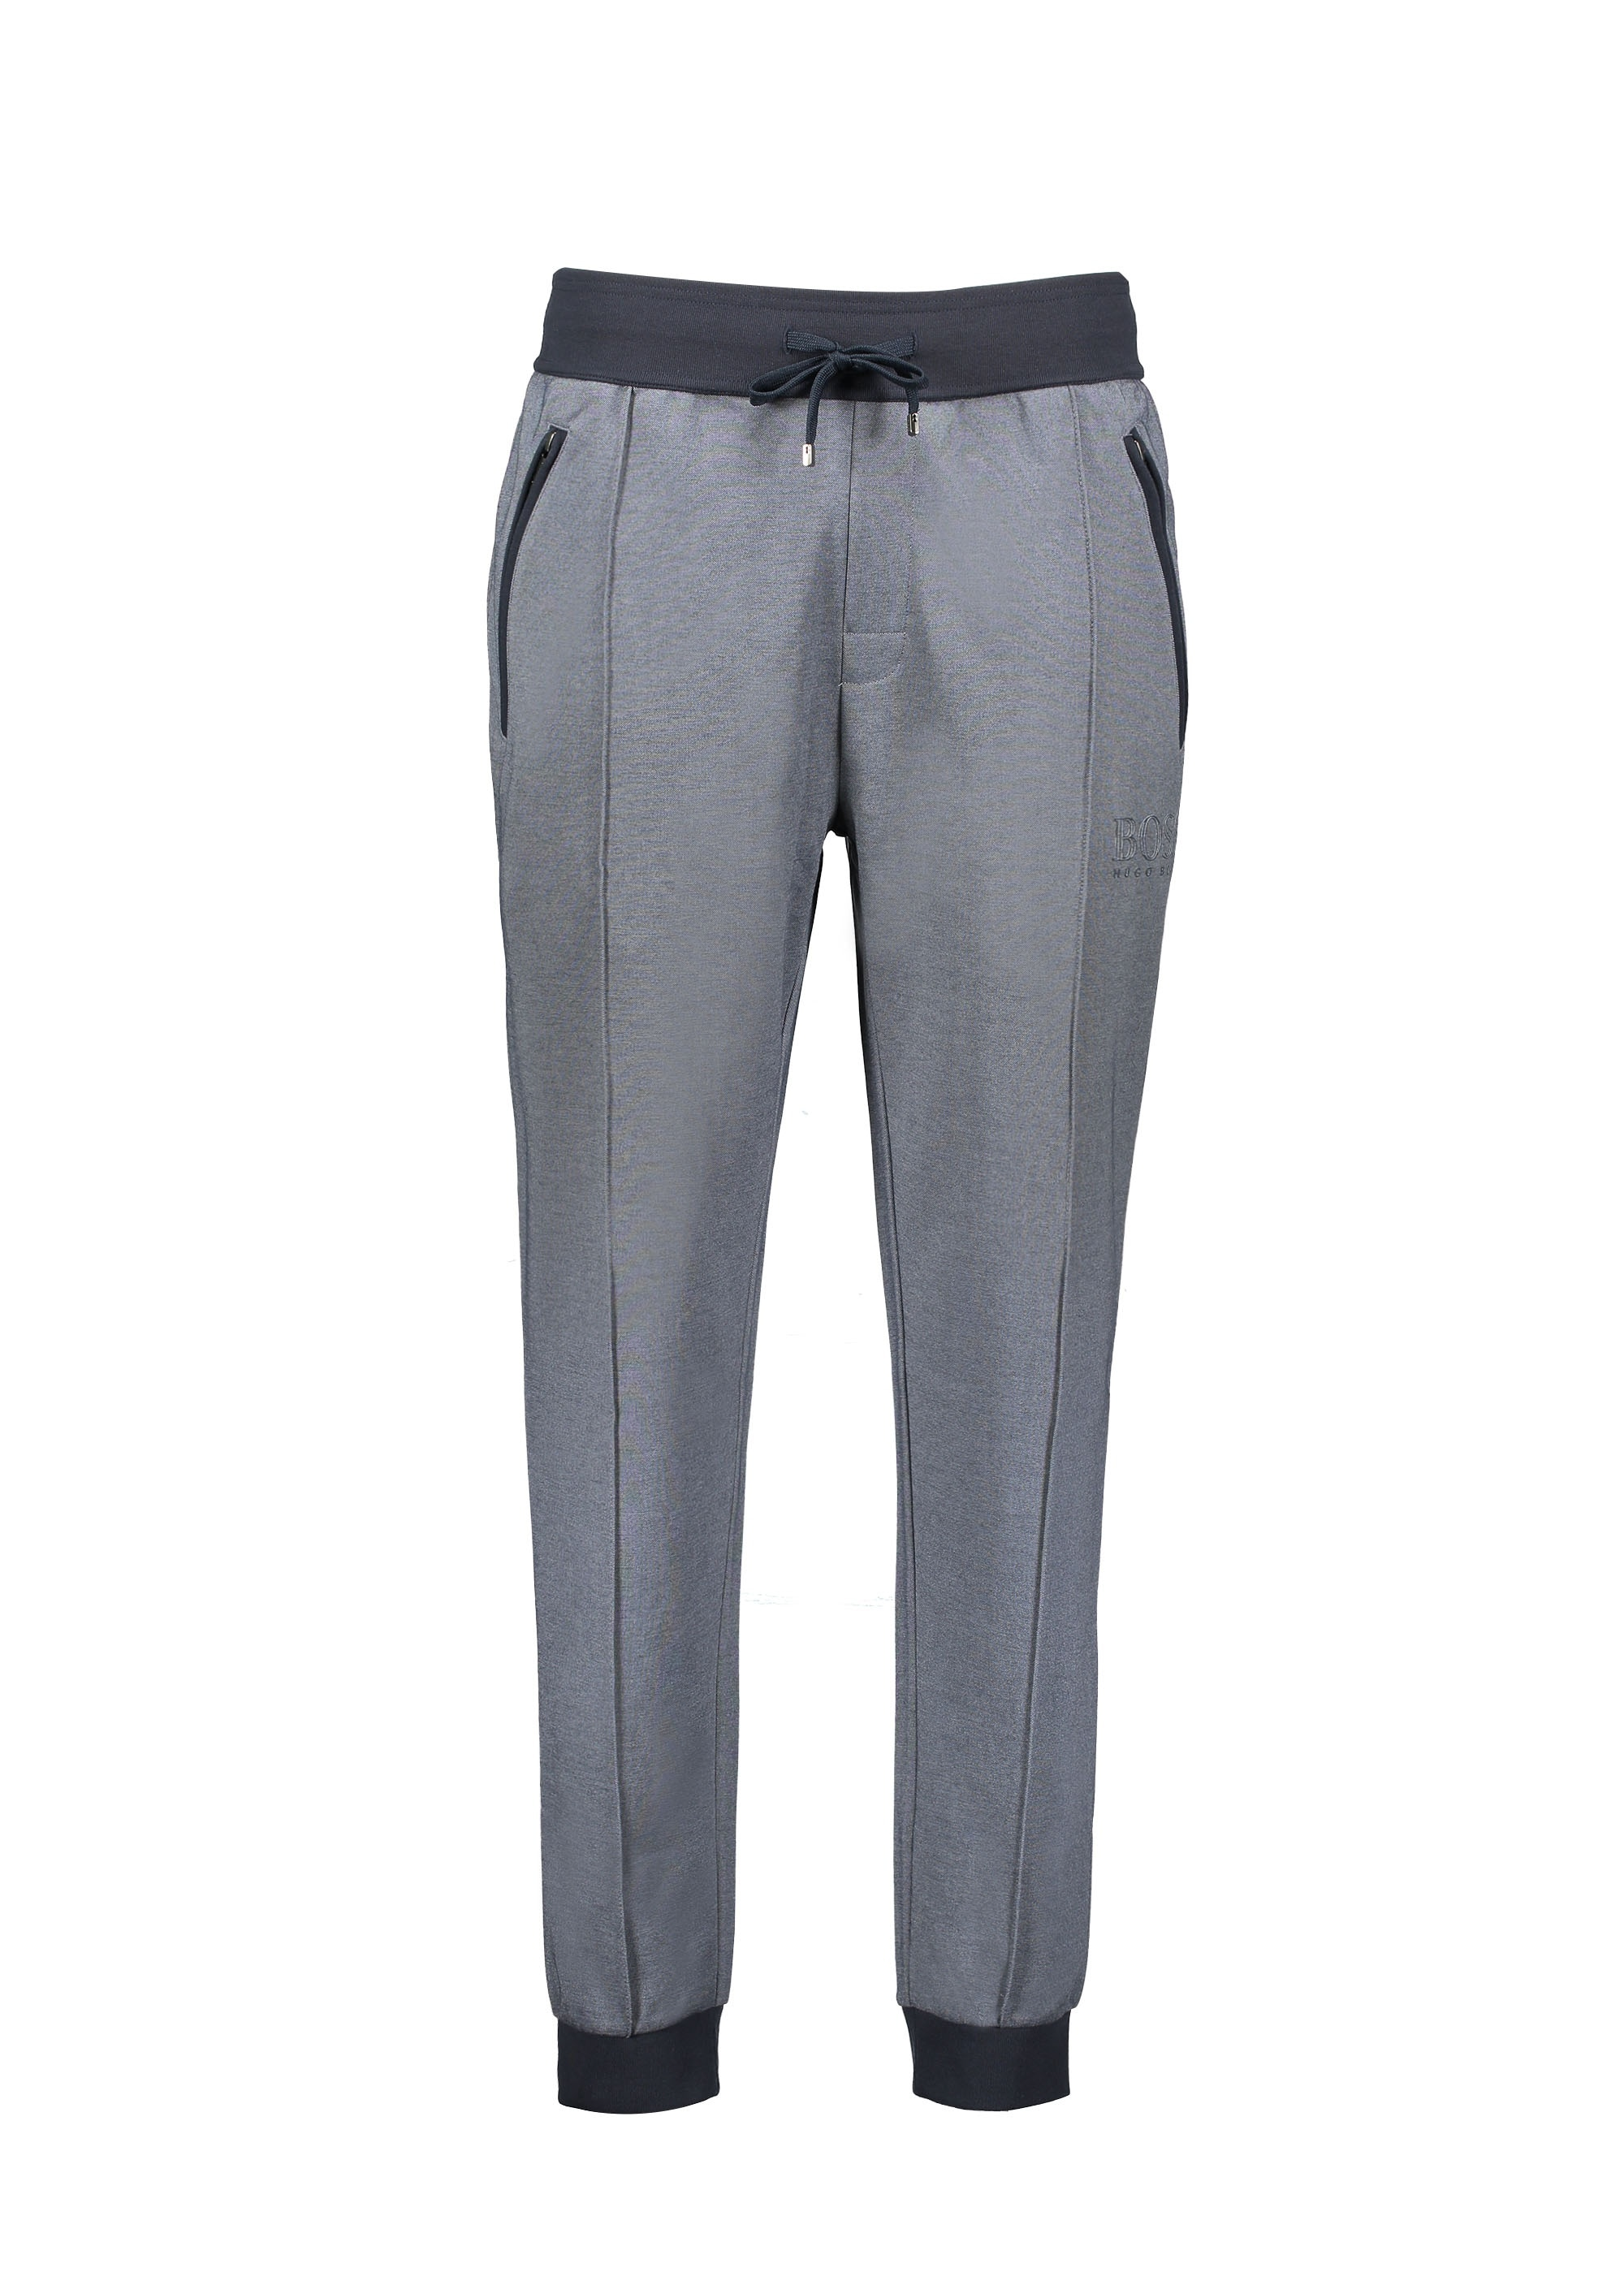 fbe8340a3 BOSS Tracksuit Pants - Dark Blue - Triads Mens from Triads UK